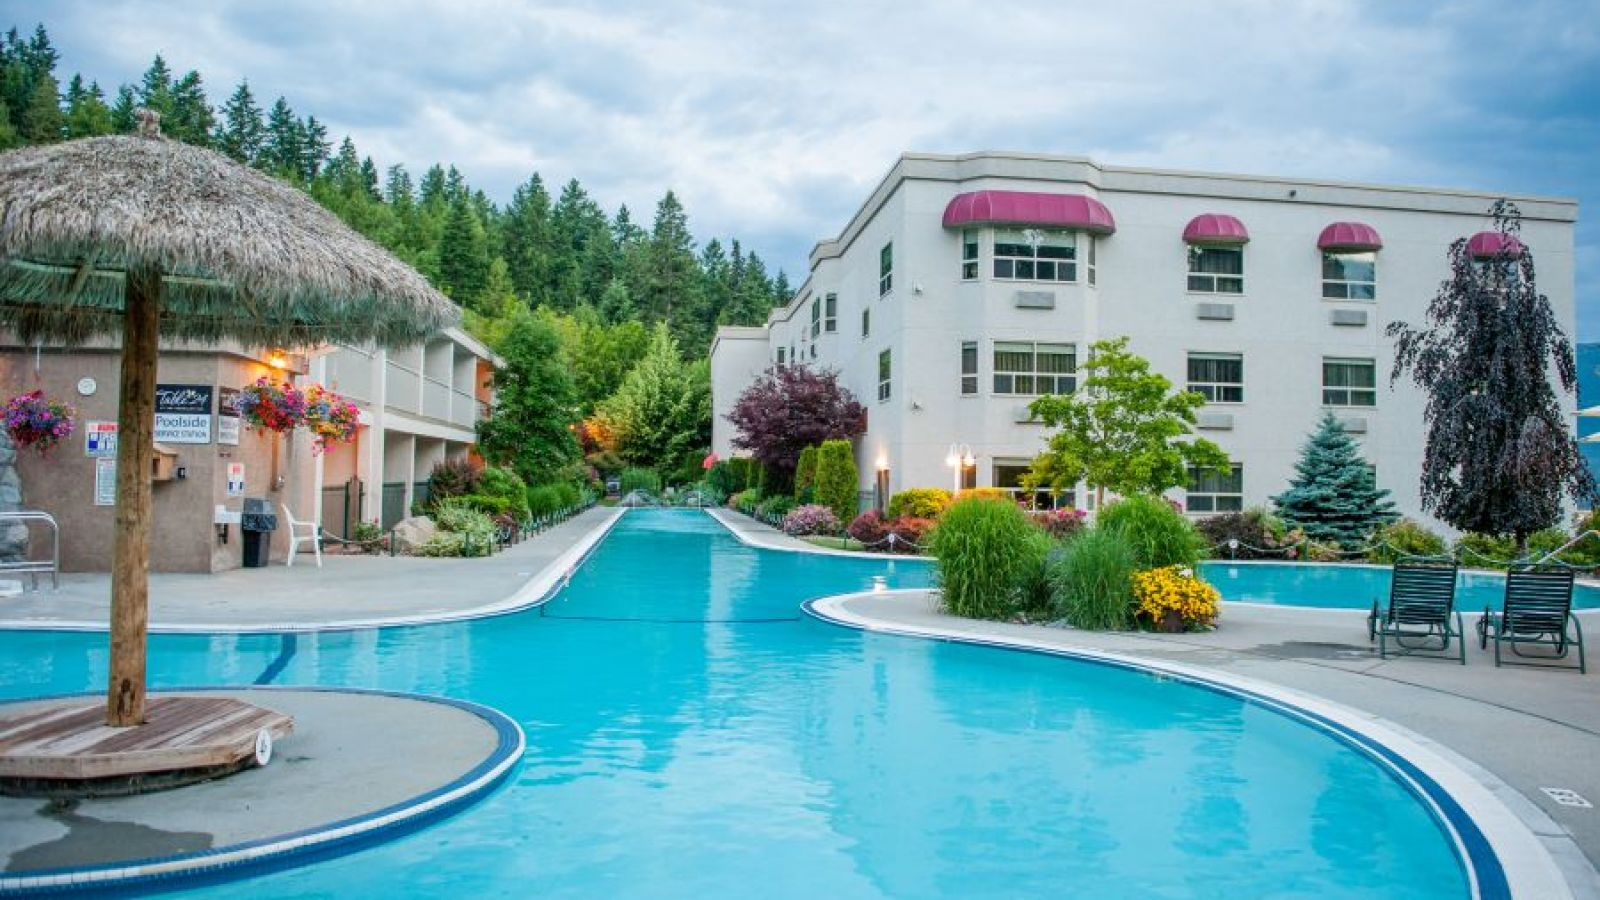 Pool area at the Hilltop Inn Salmon Arm